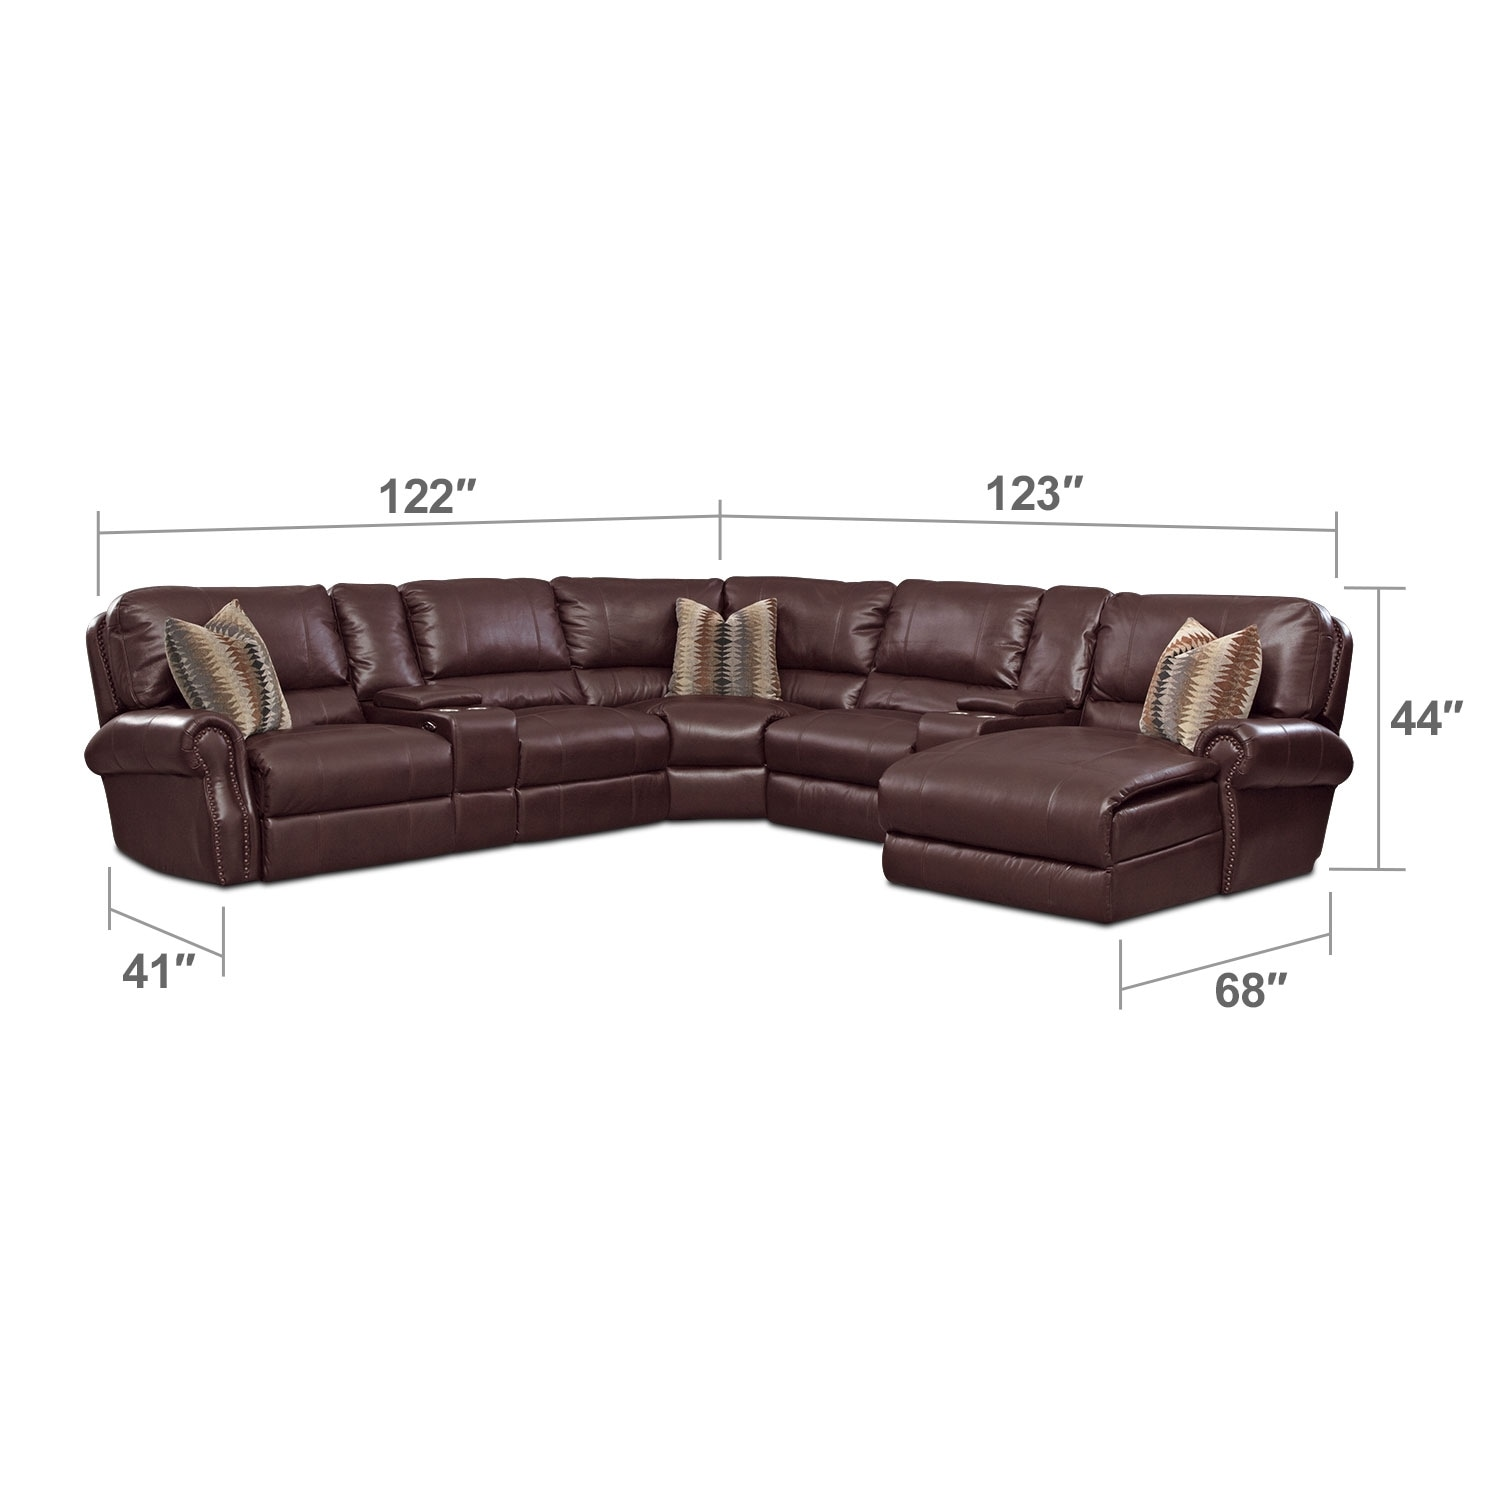 Living Room Furniture - Princeton 5 Pc. Power Reclining Sectional